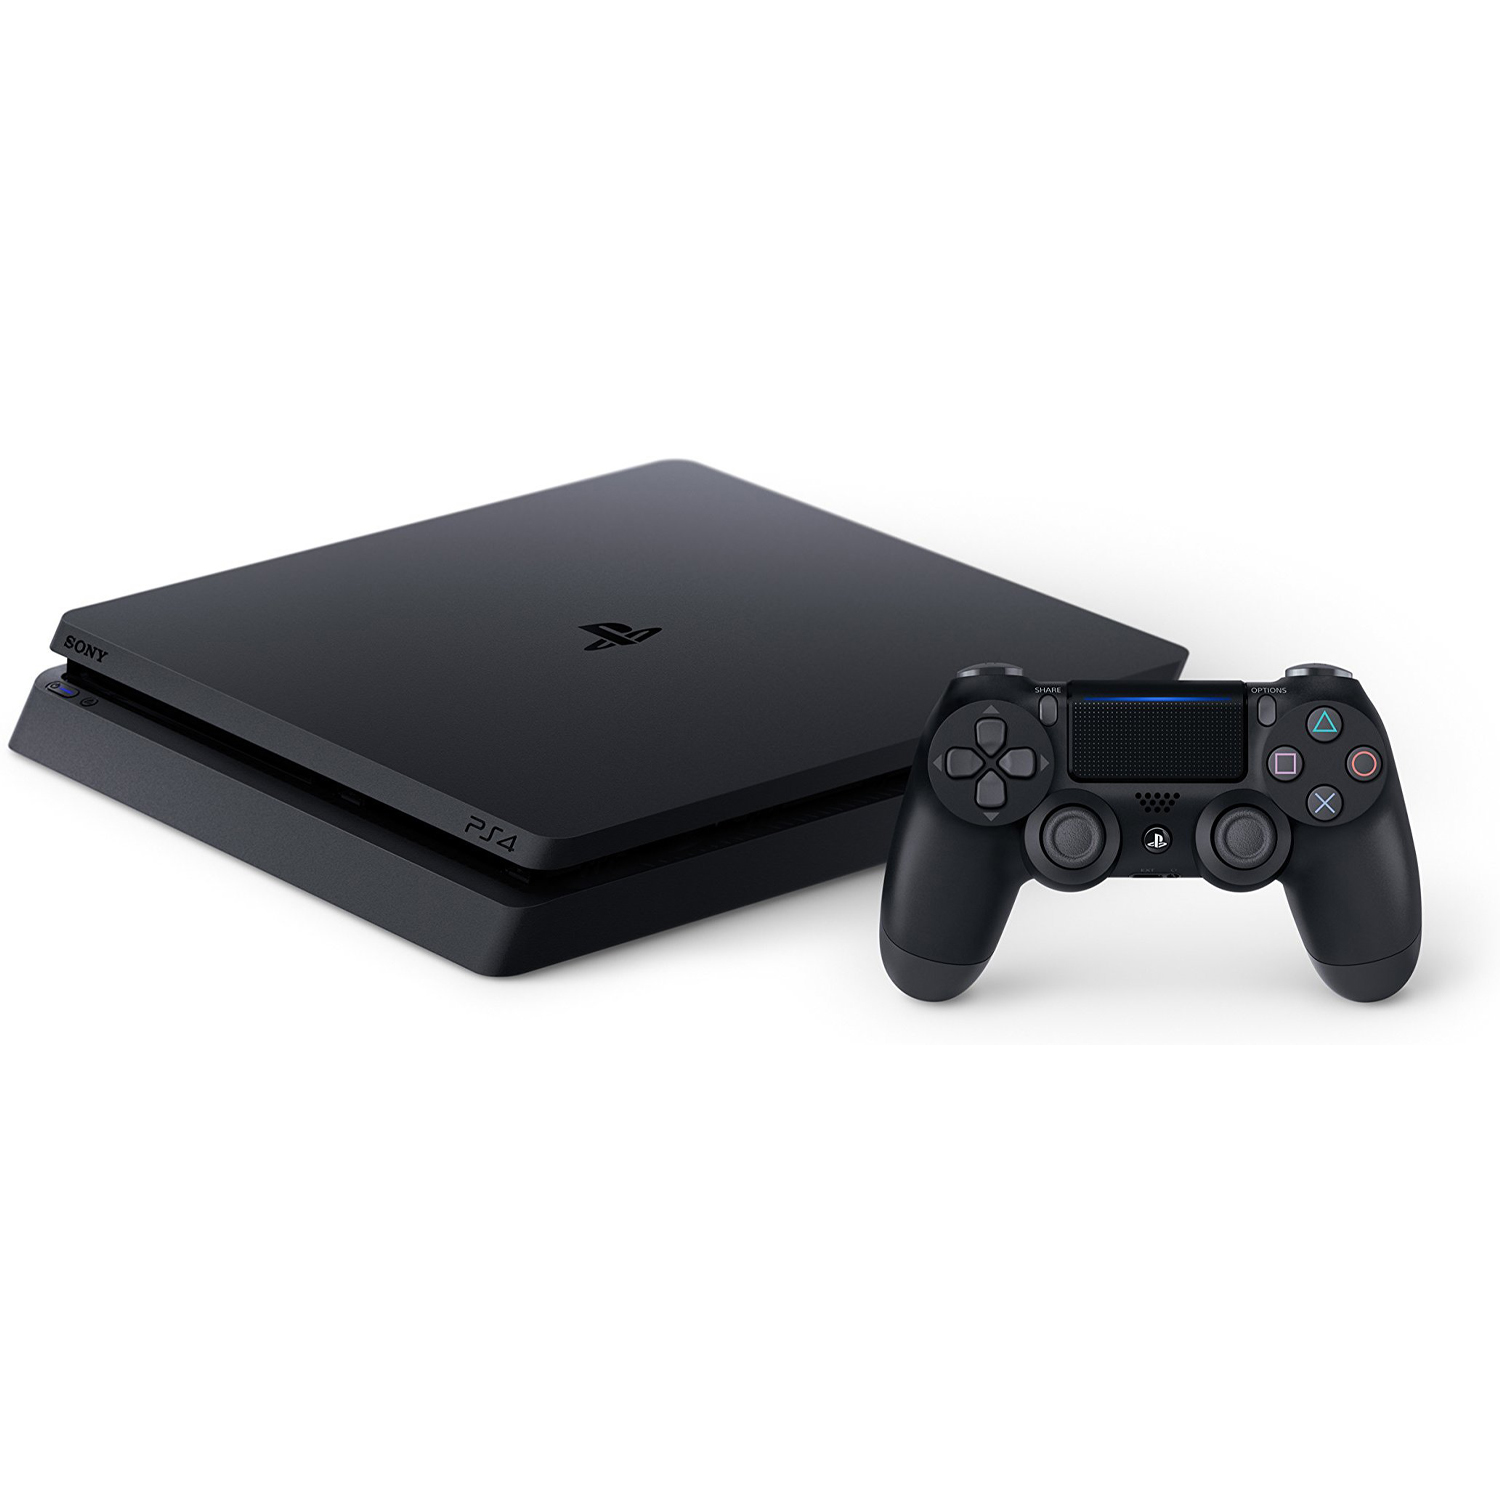 Sony PlayStation 4 Slim 500GB Gaming Console, Black, CUH-2115A by Sony PlayStation